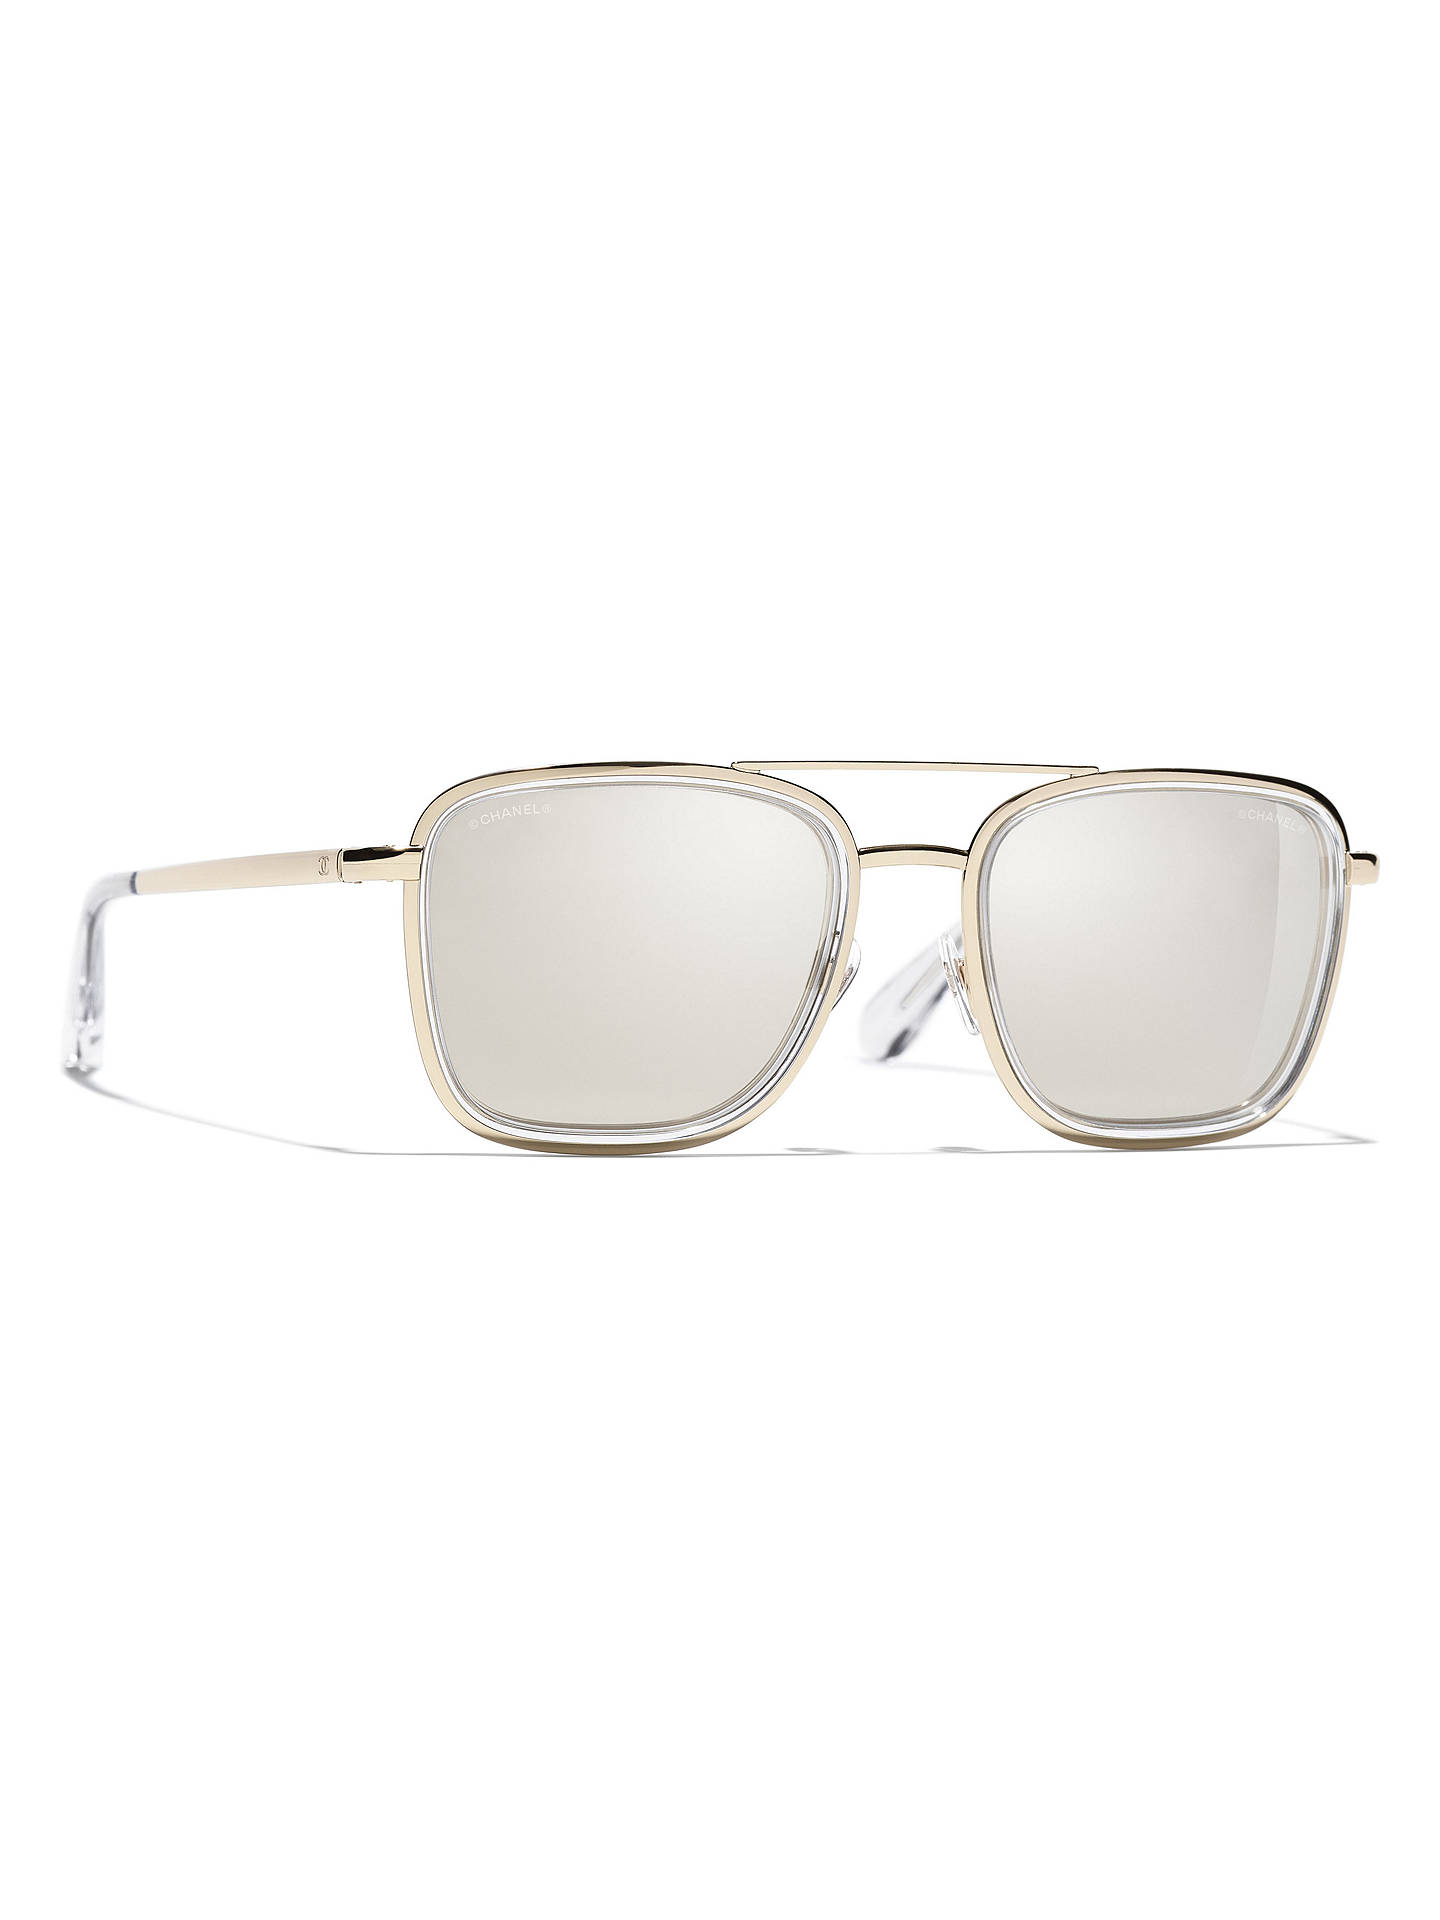 bab1154b0 Buy CHANEL Square Sunglasses CH4241 Light Gold/Mirror Gold Online at  johnlewis.com ...